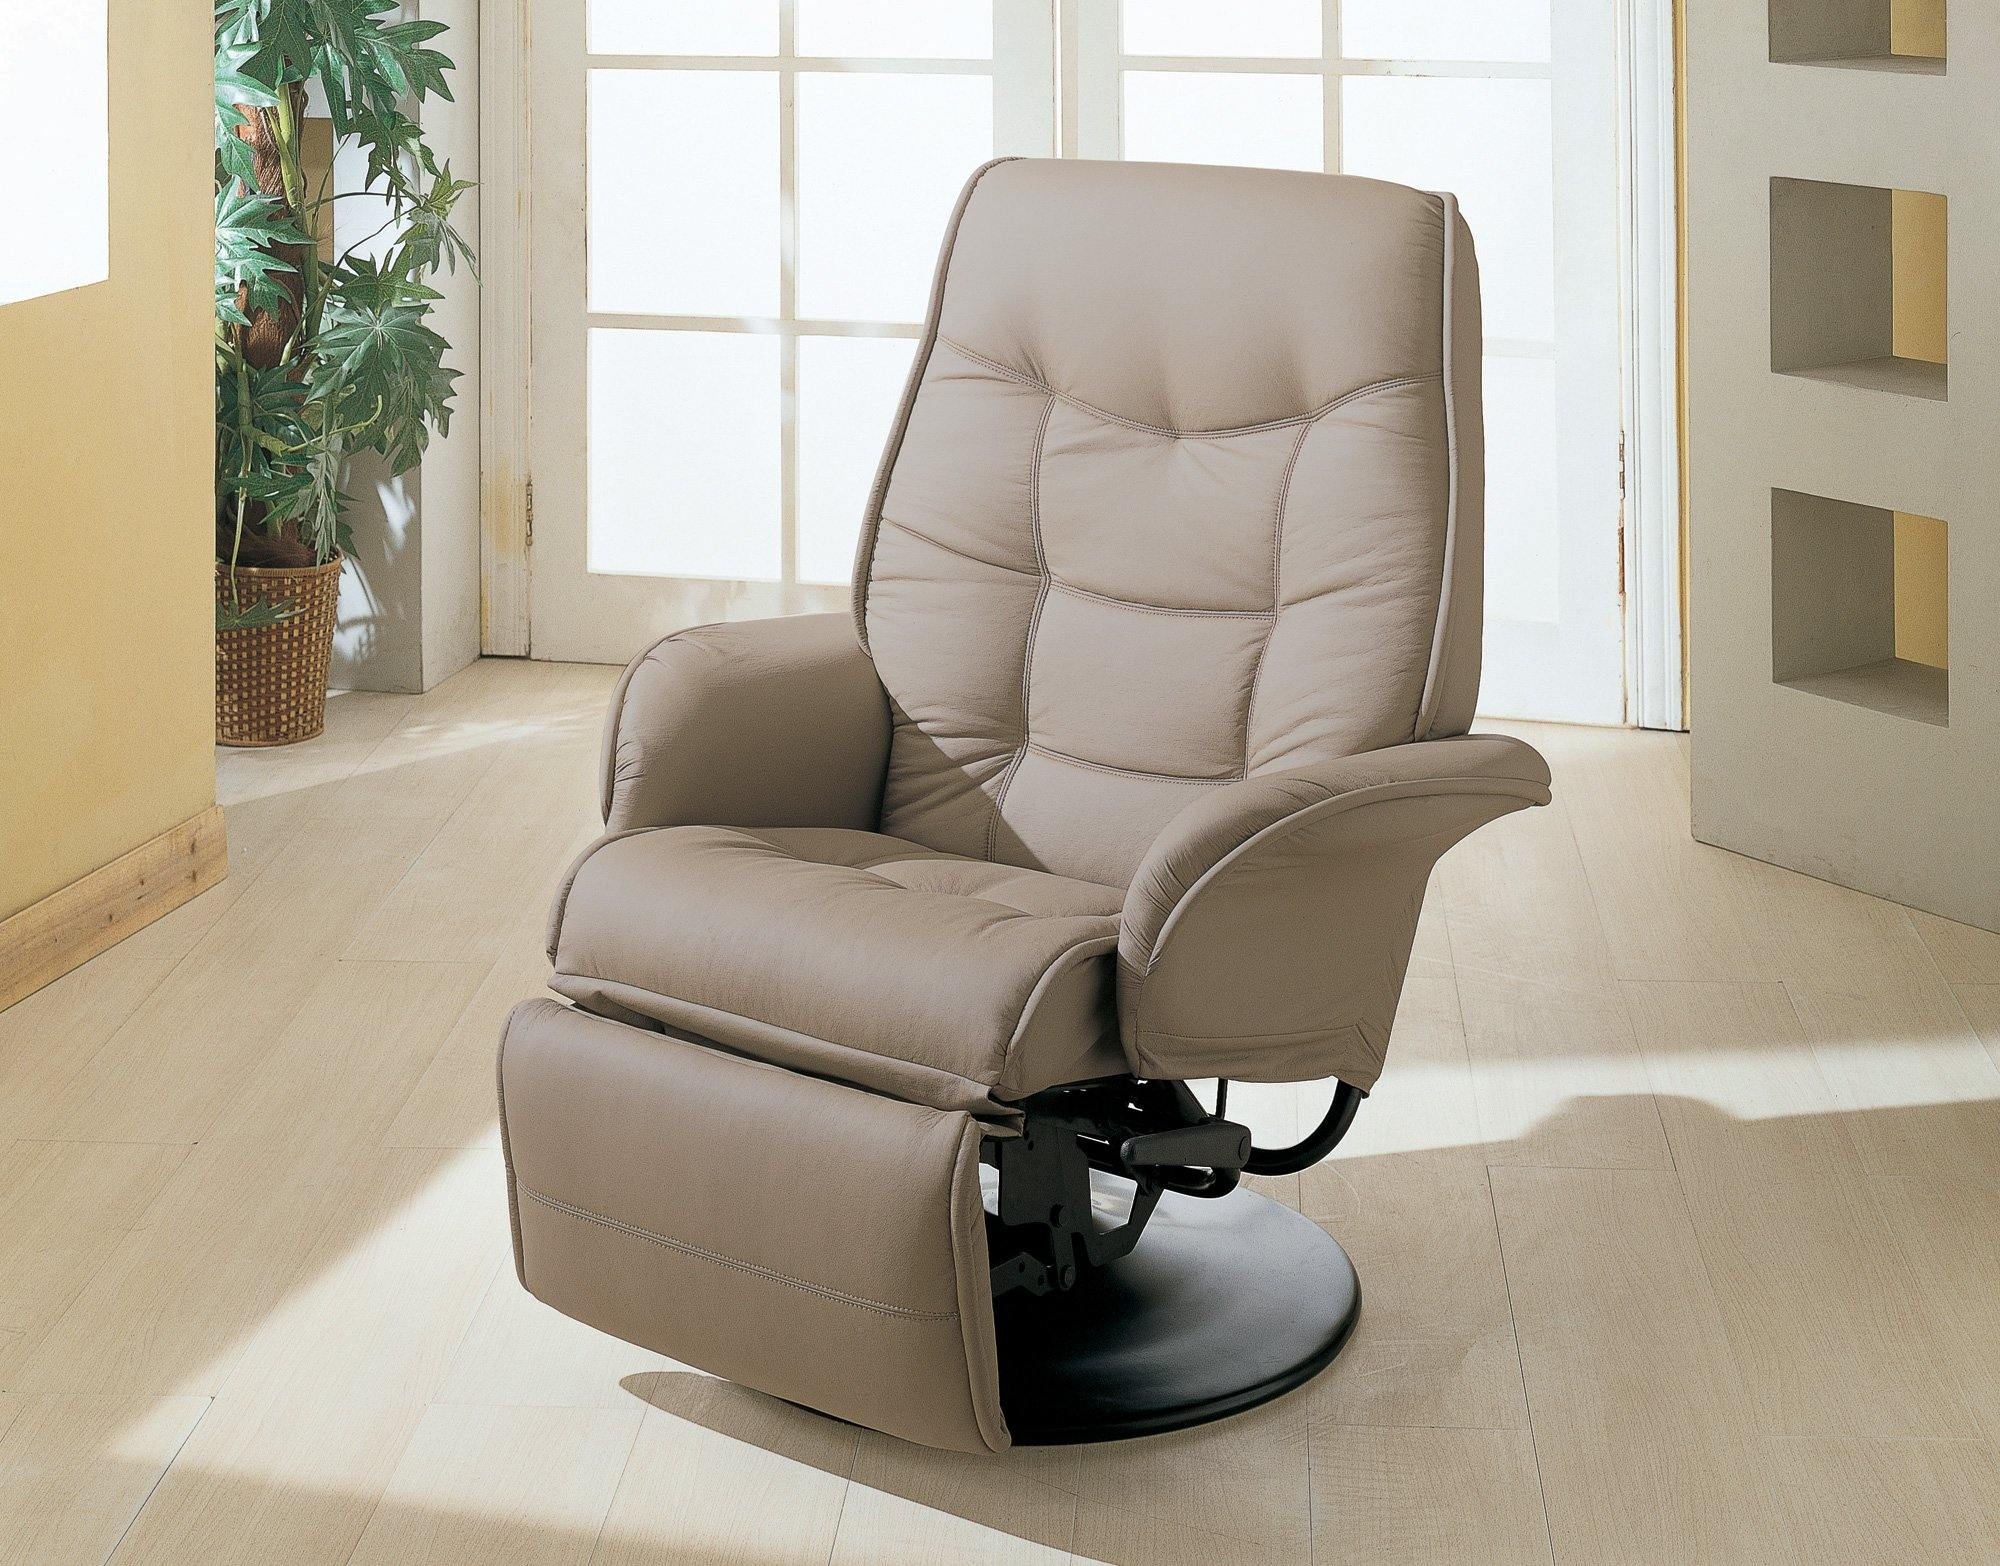 Living room : recliners 7502 leatherette recliners By coaster - sofafair.com